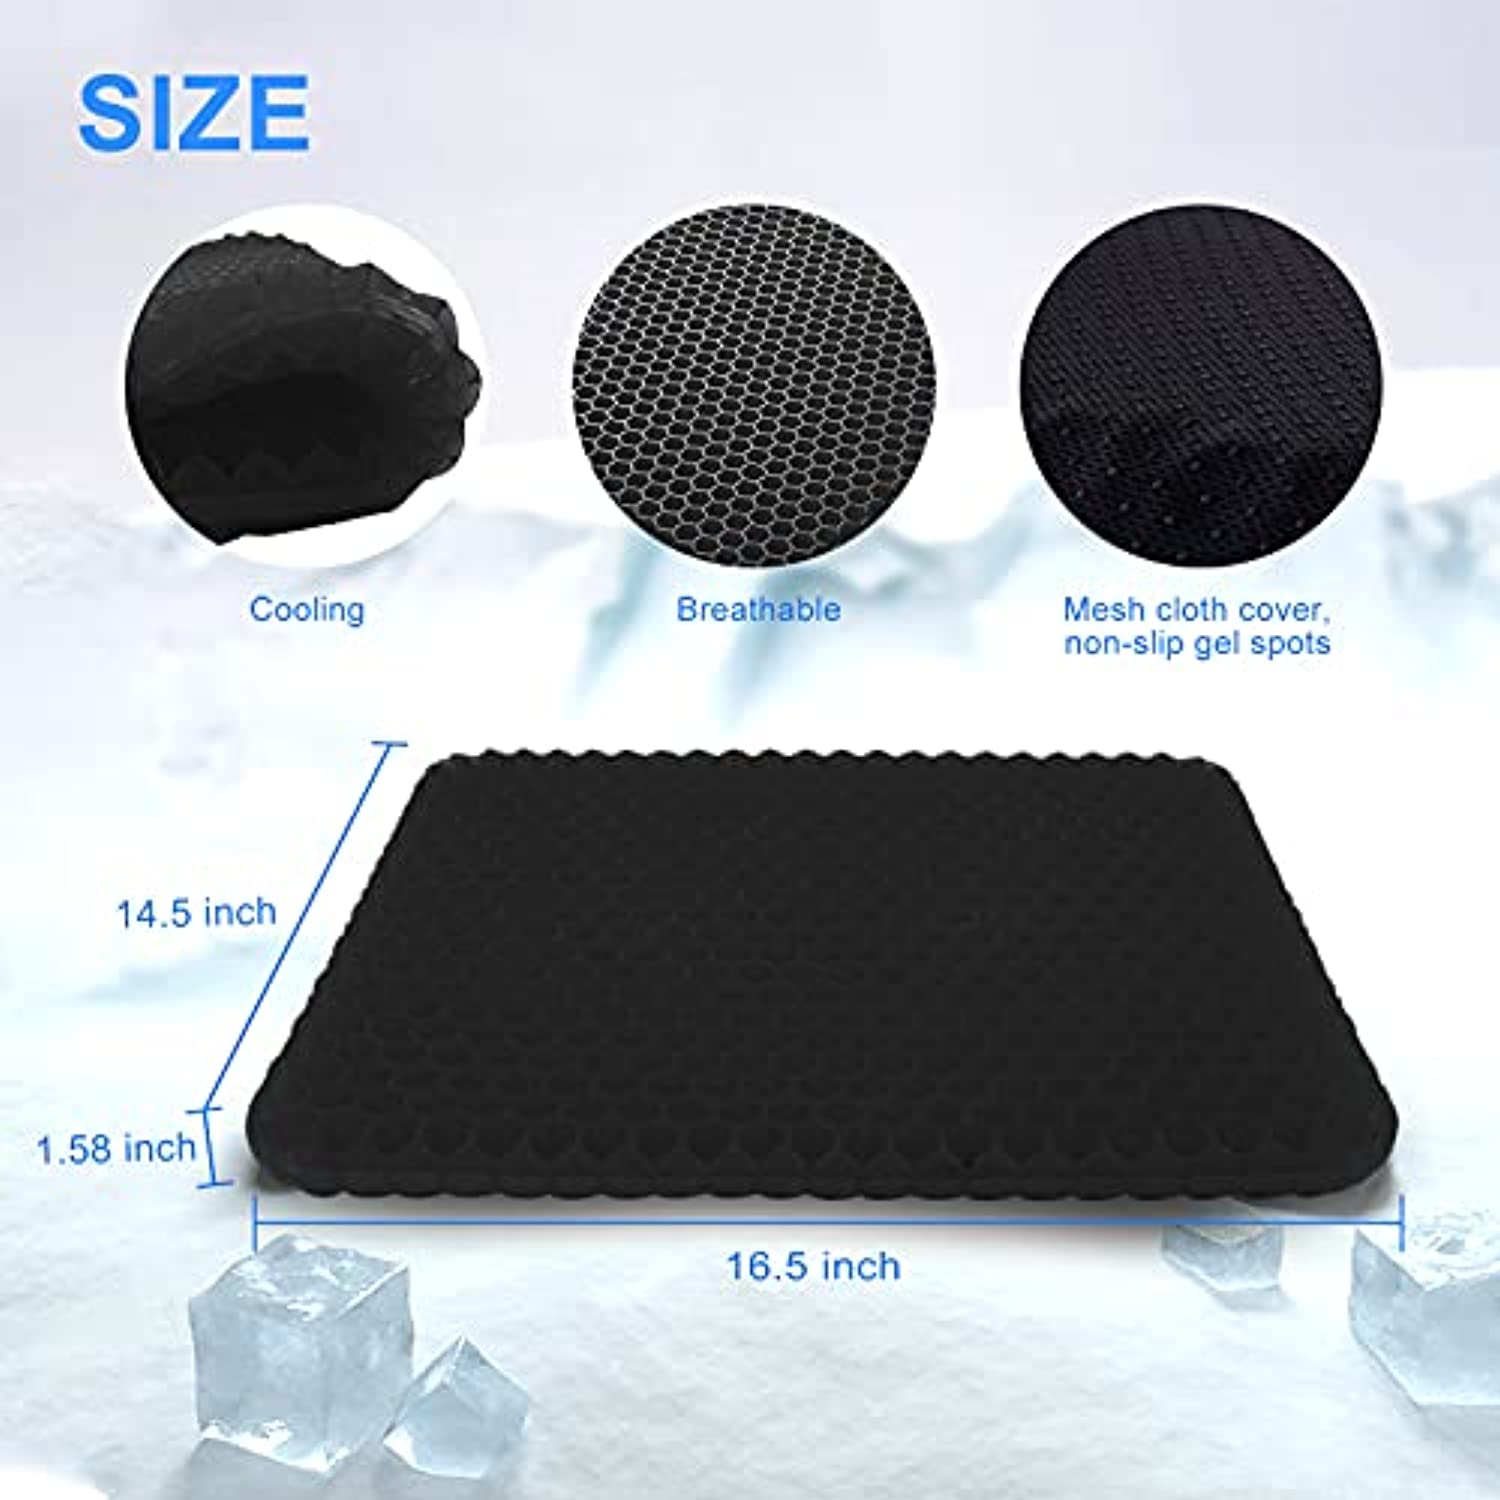 PACK OF 5 Gel Seat Cushions, Black Egg Seat Cushion with Non-Slip Cover Breathable Honeycomb Pain Relief Egg Sitting Cushion for Office Chair Car Wheelchair